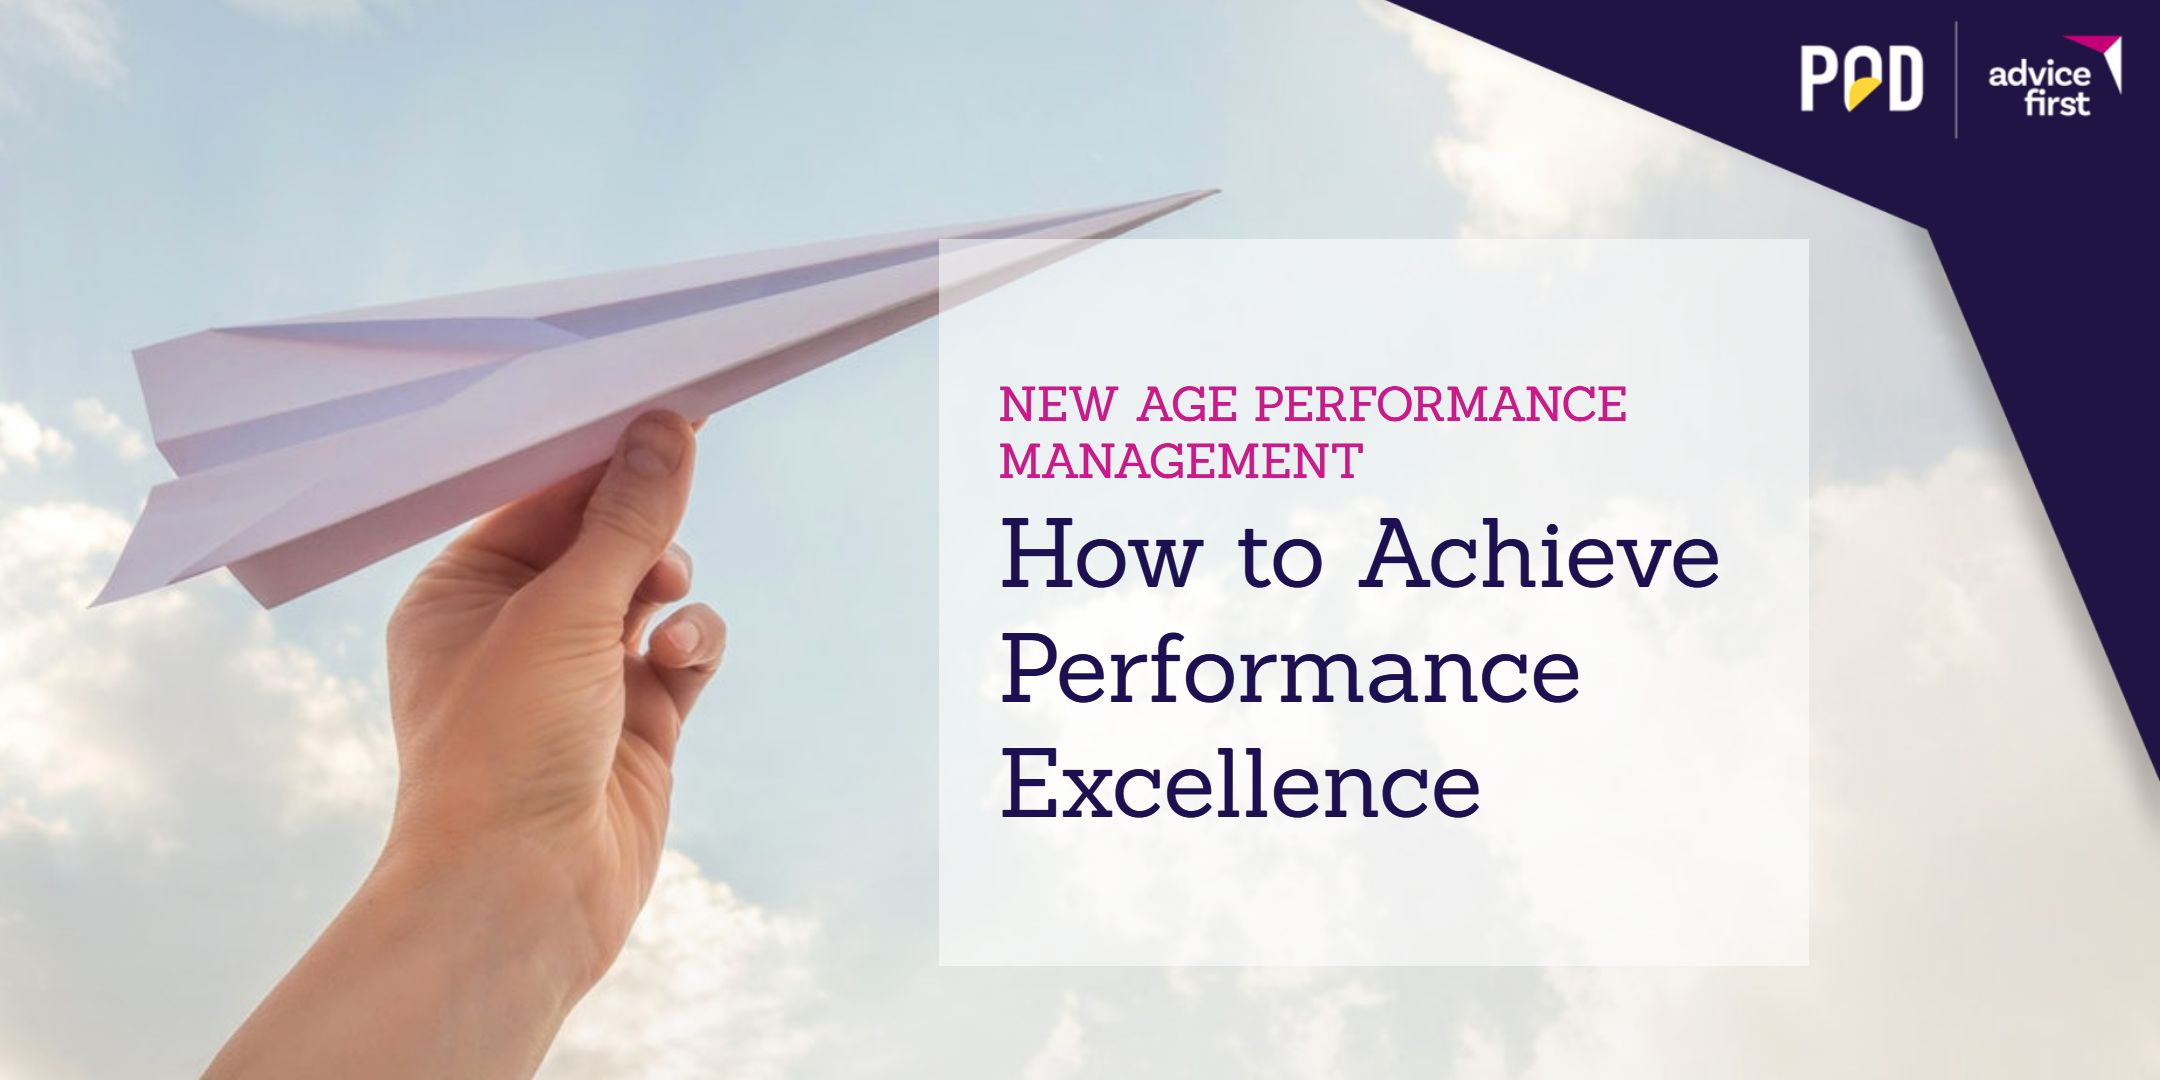 New Age Performance Management – How to Achieve Performance Excellence